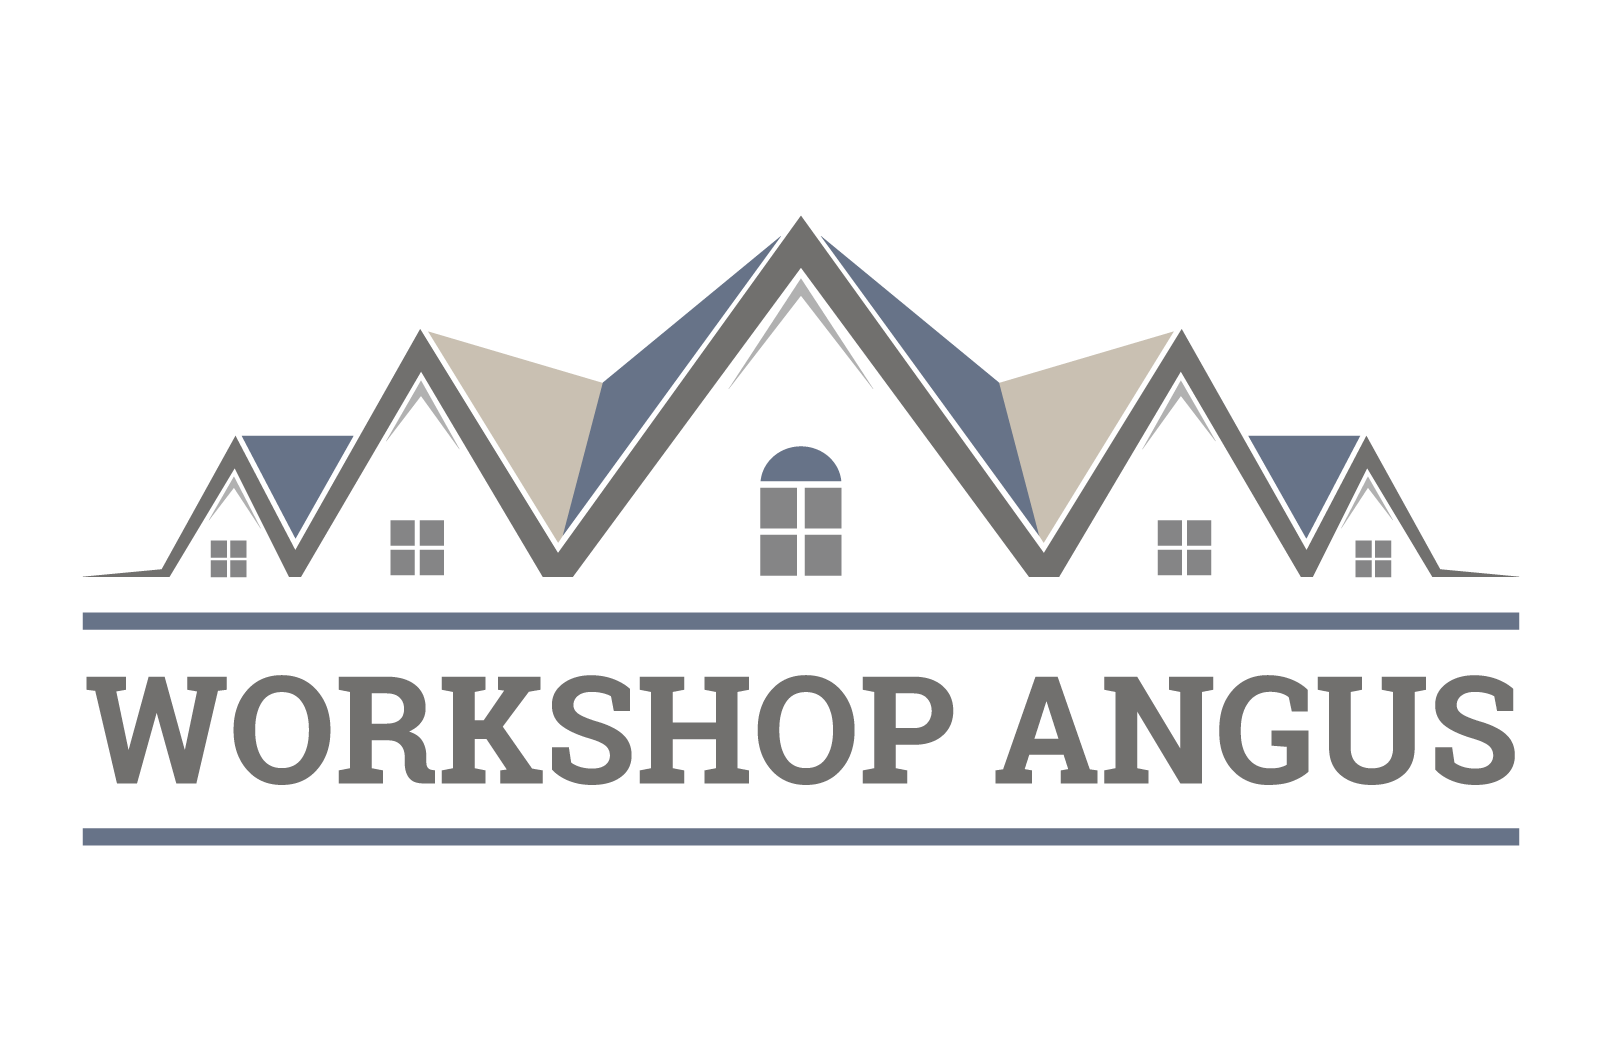 Workshop Angus Corporate Identity